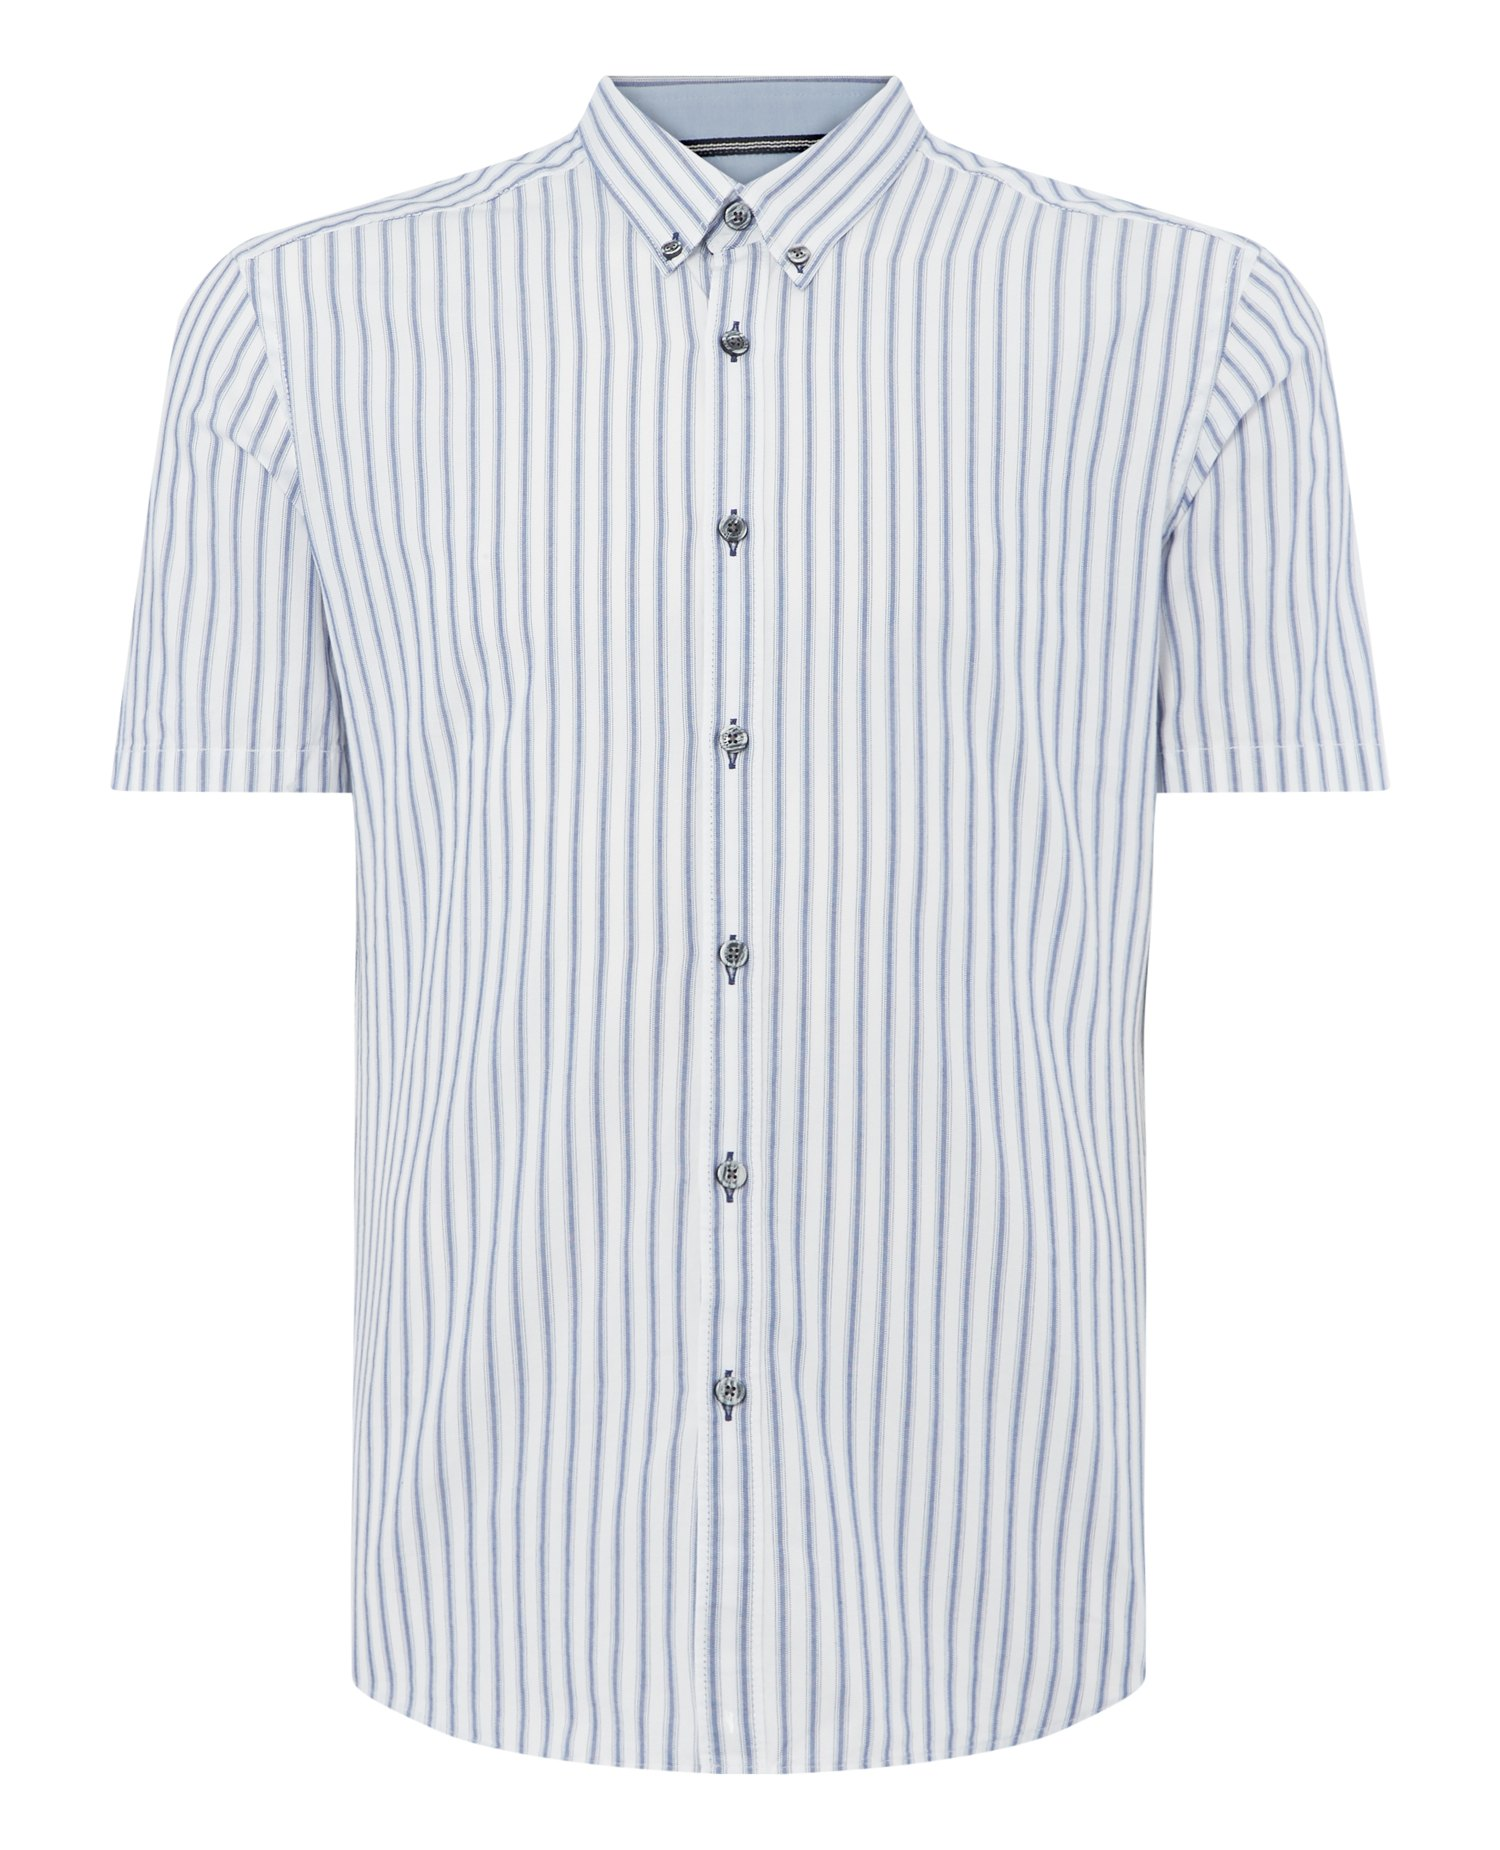 Slim Fit Striped Cotton Short Sleeve Shirt